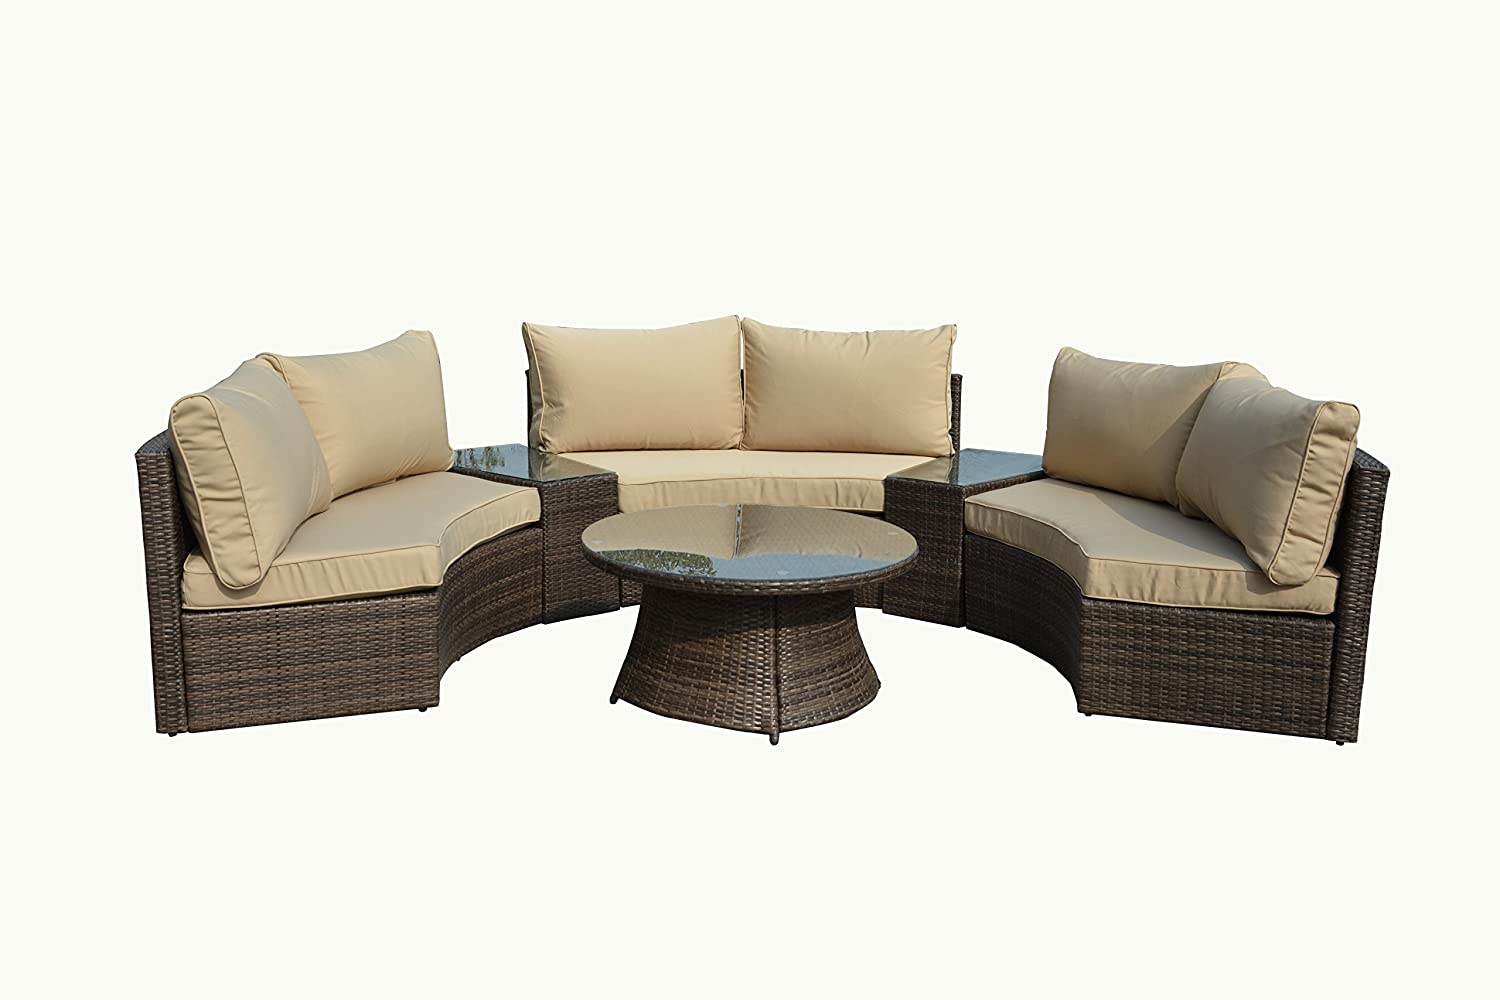 Amazon.com: Manhattan Comfort Pearl Semi  Circle Outdoor Patio Sofa Set:  Kitchen U0026 Dining